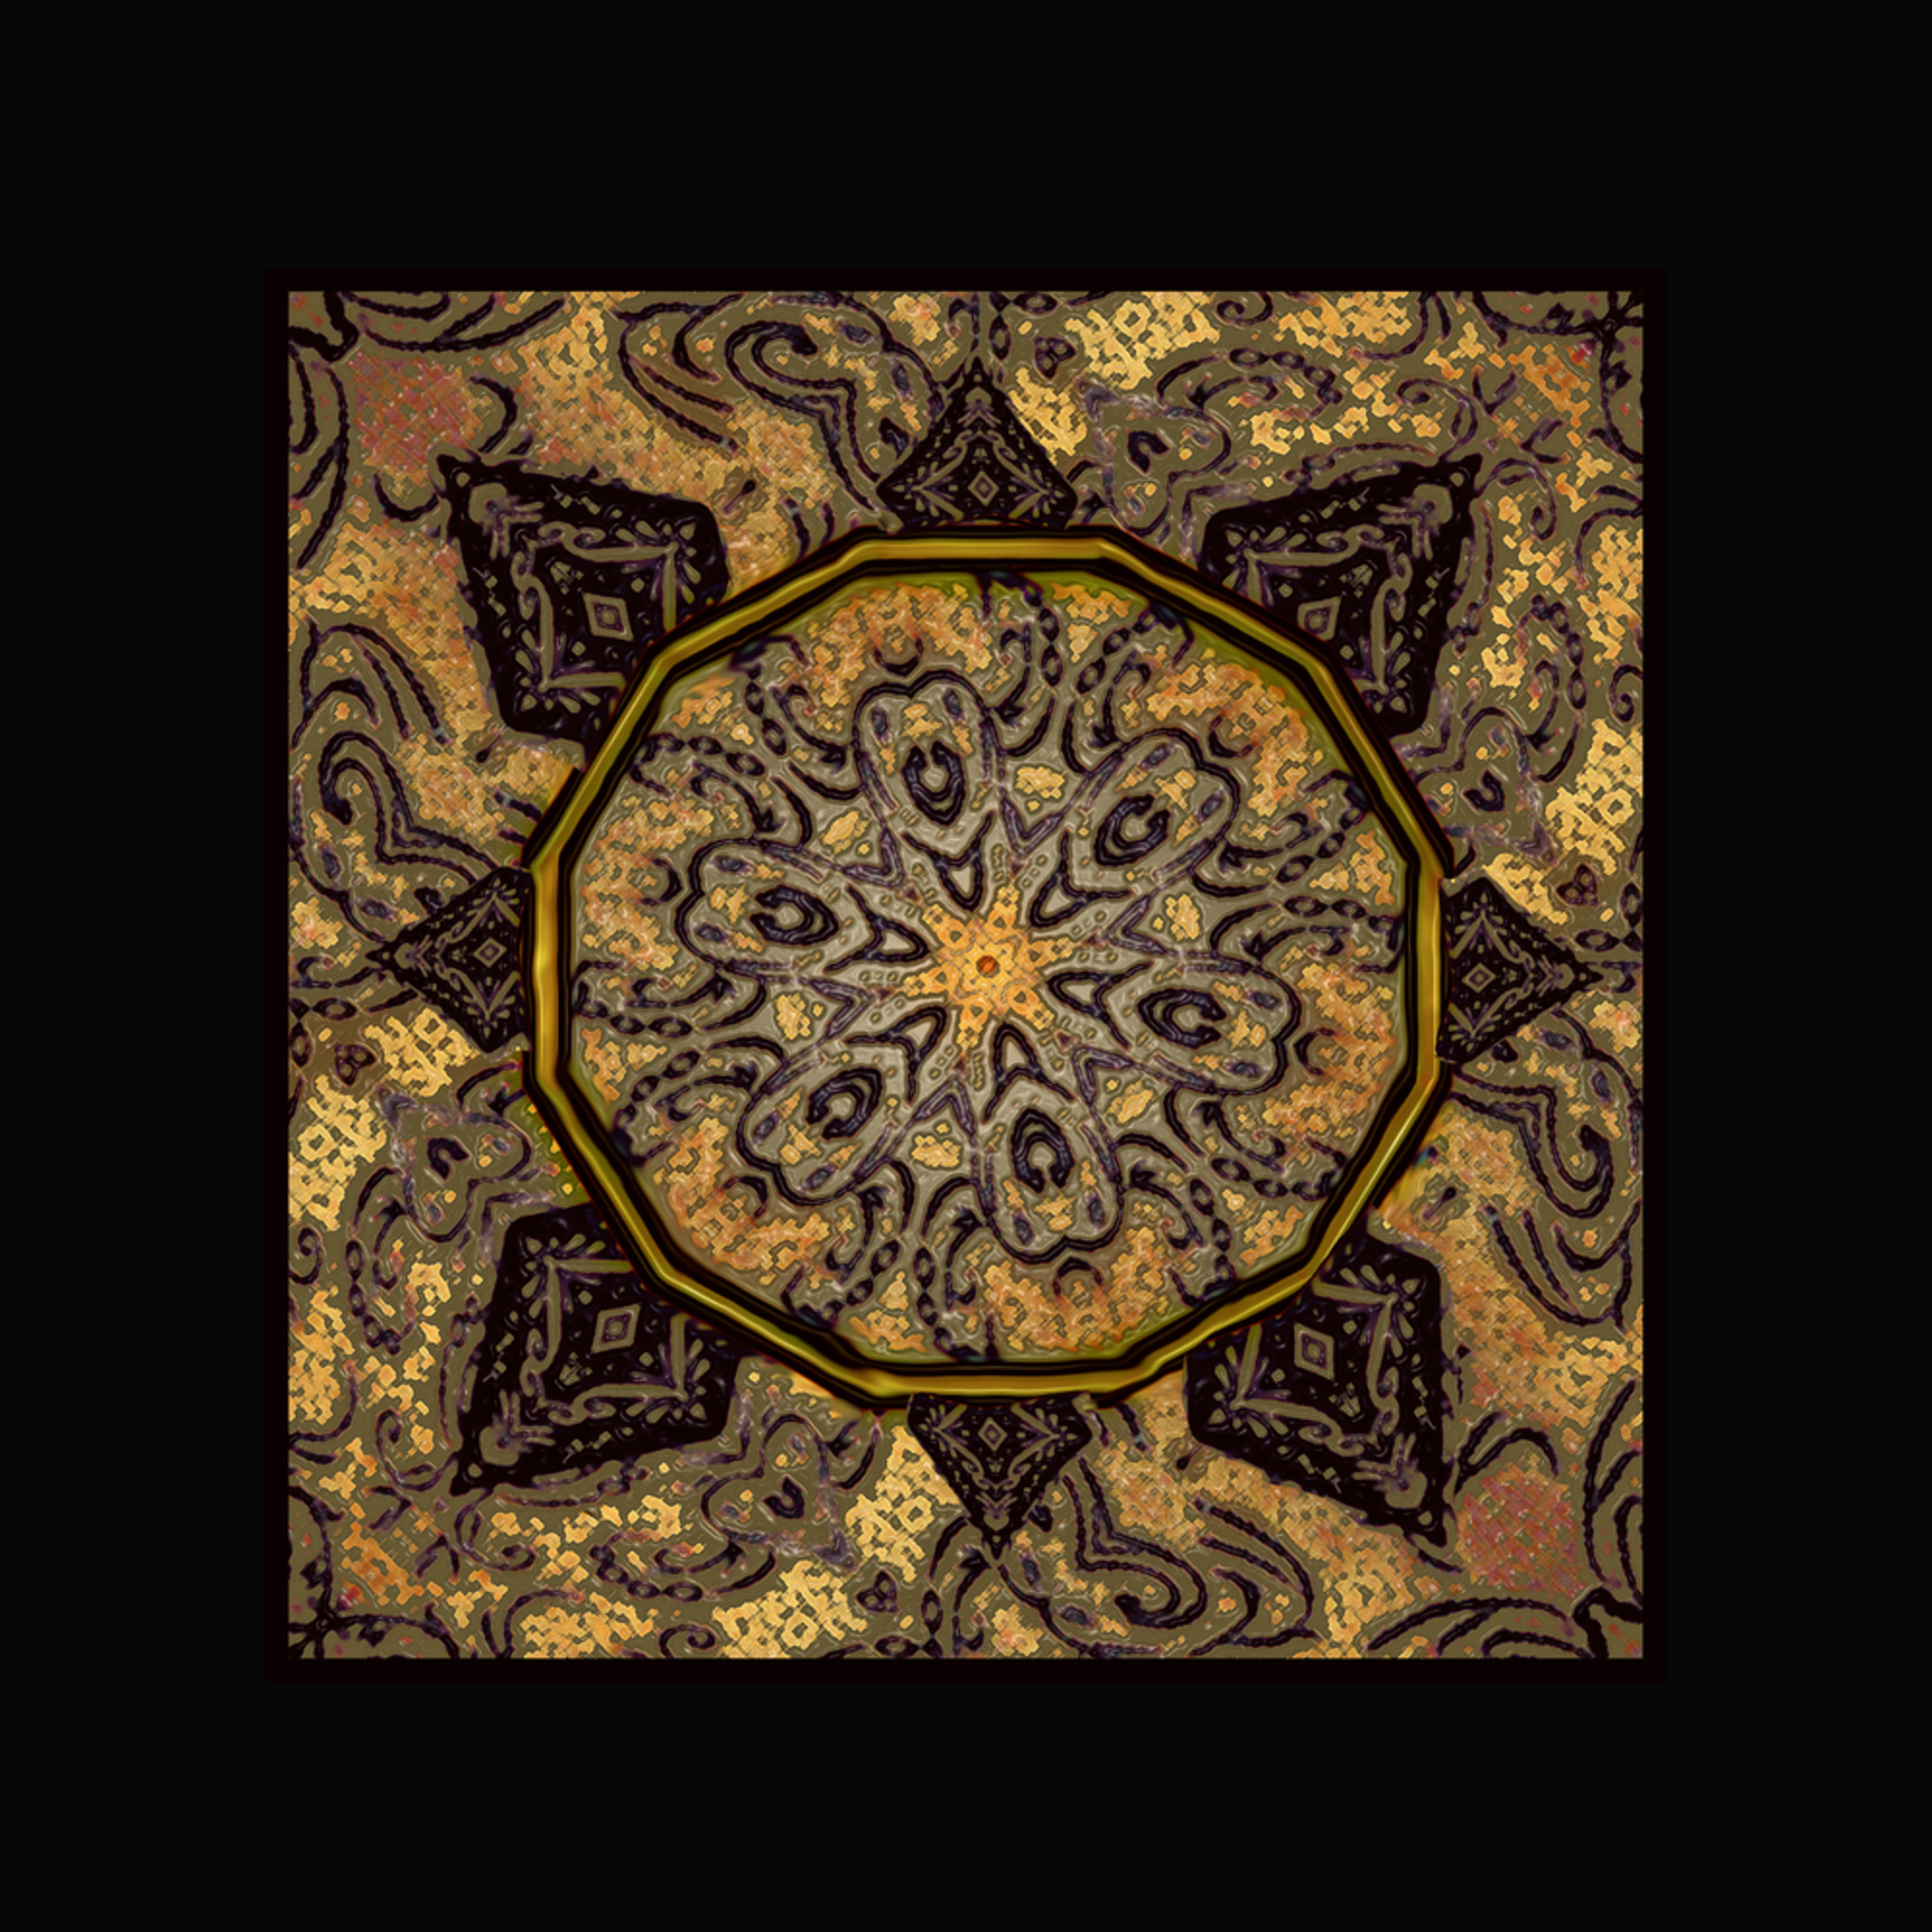 Golden day mandala large nc4mnh